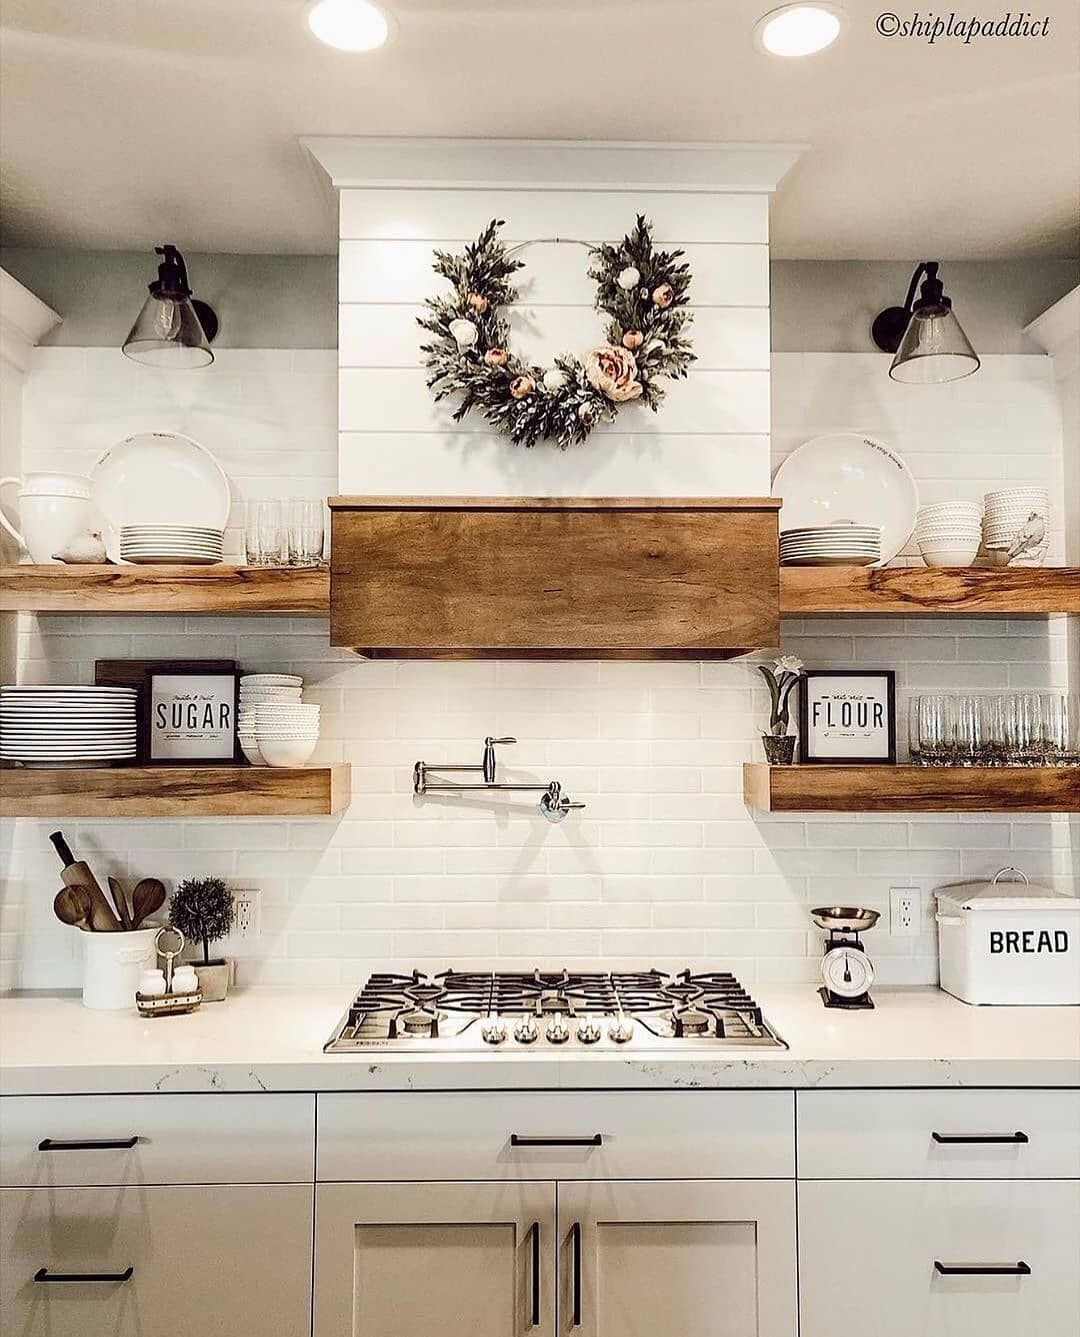 "Farmhouse Homes � on Instagram: ""What do you think of this gorgeous white farmhouse kitchen? ️ We are in love with the natural woods and the contrast of the wreath! � Tag…"""